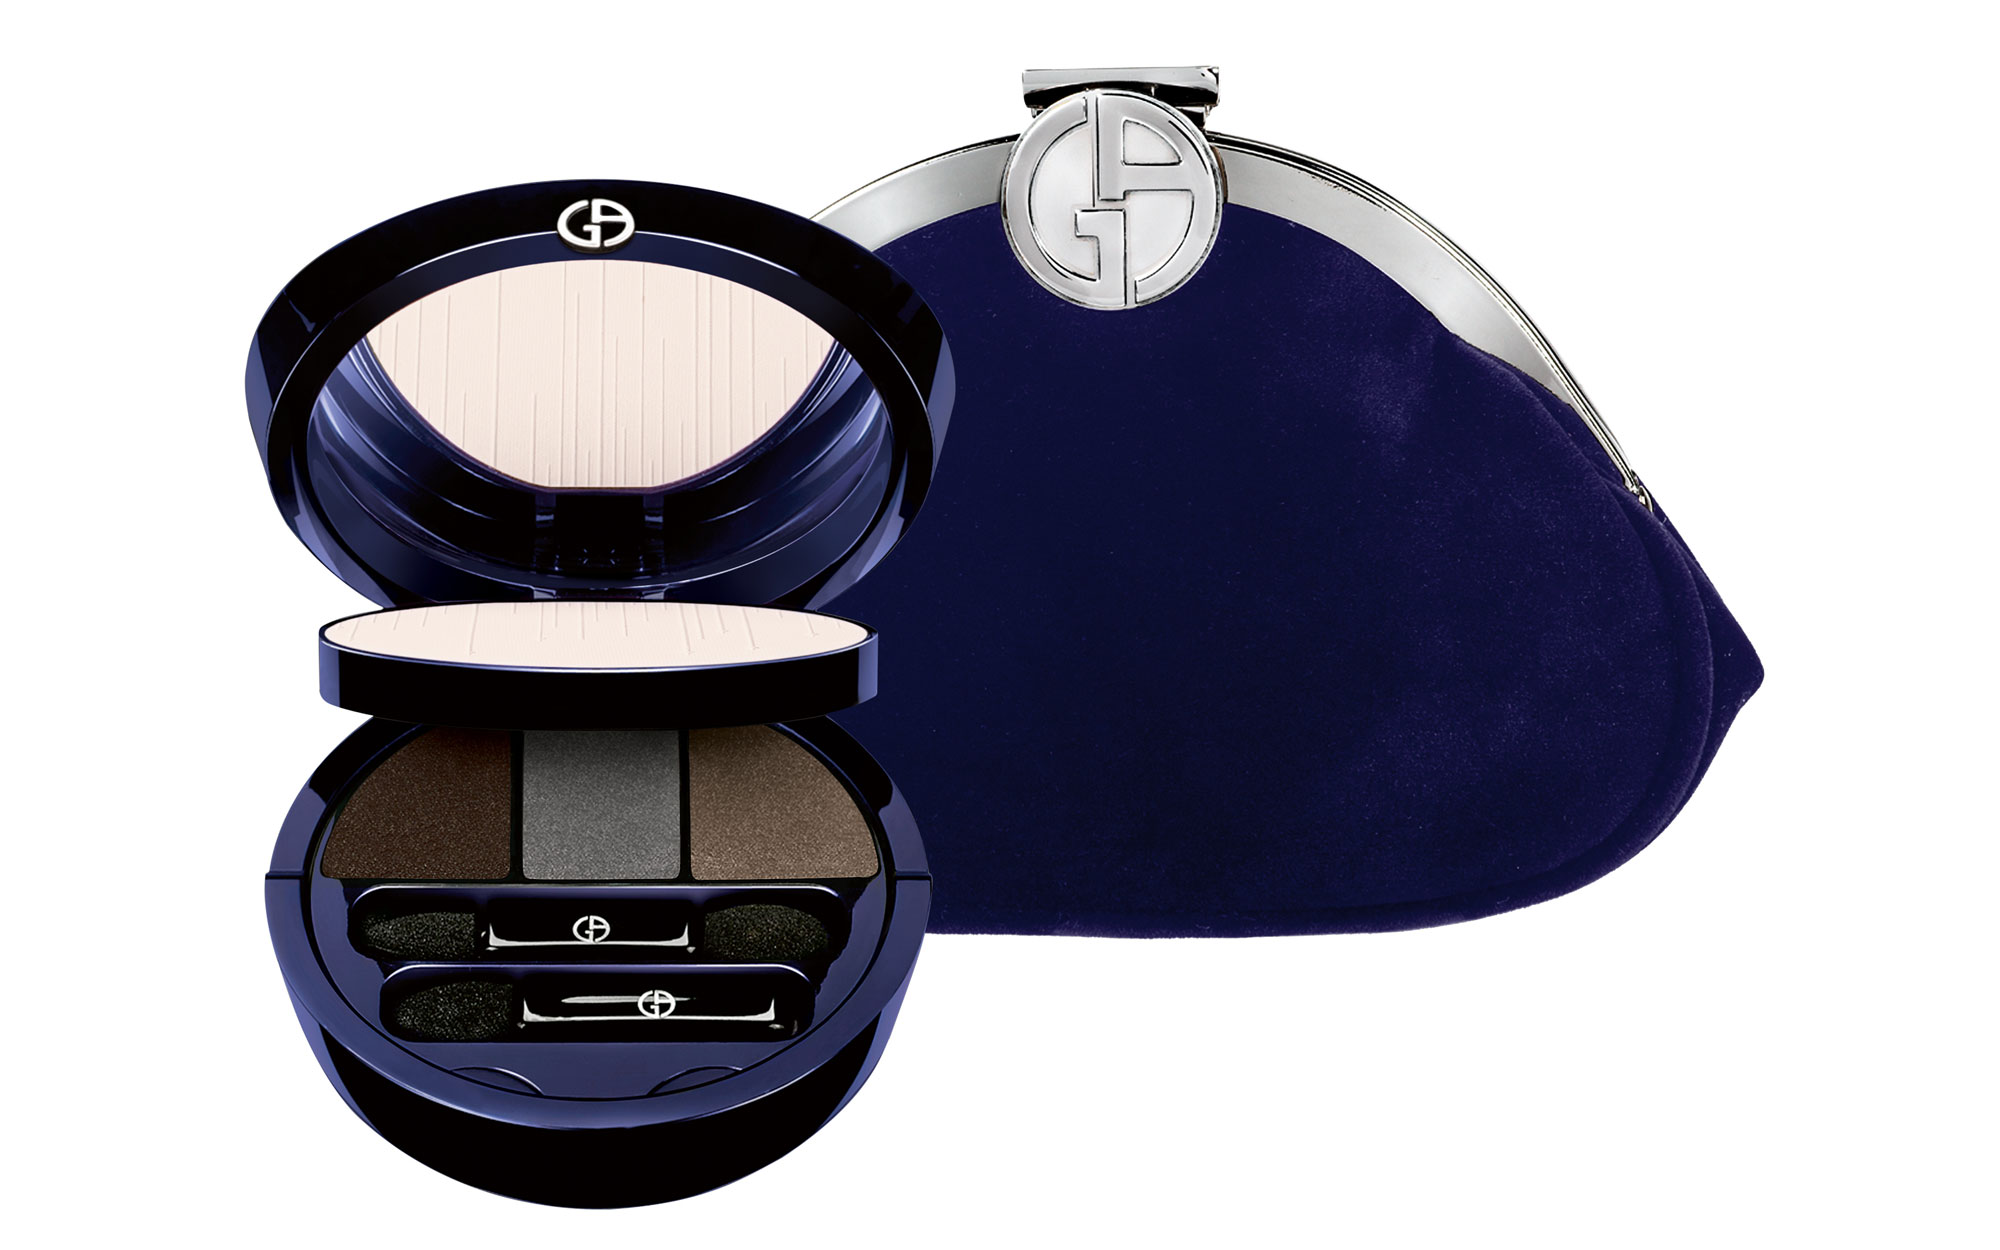 Best Beauty Gifts for Travelers: Giorgio Armani 2014 Holiday Palette and Clutch